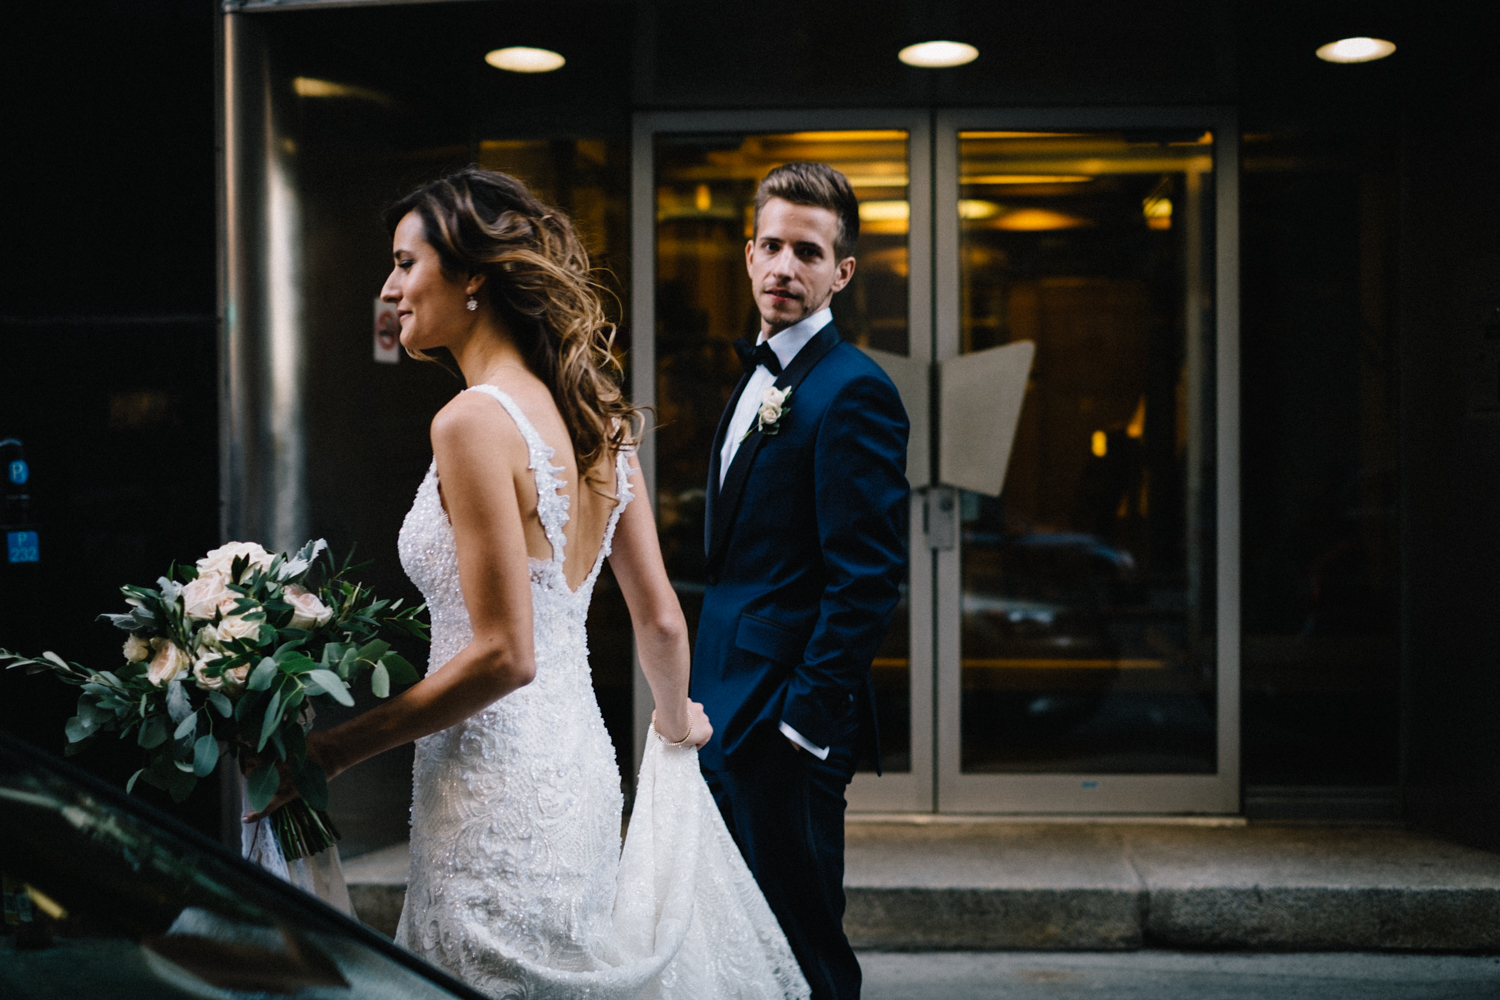 Montreal Toronto Wedding Photographer359.jpg